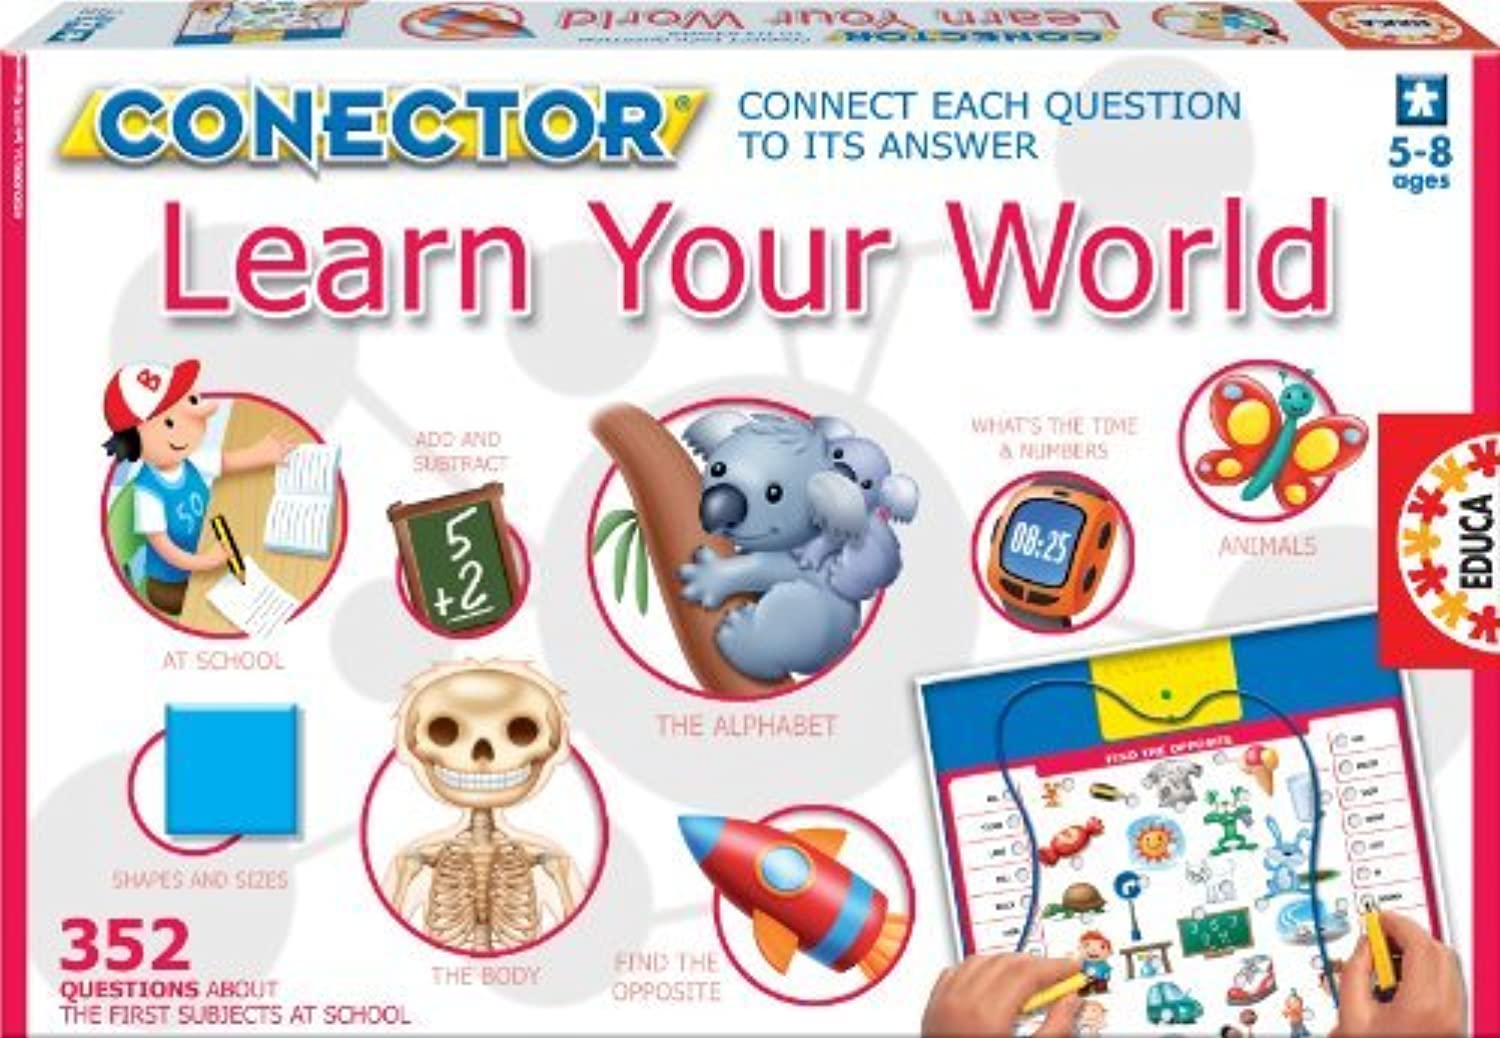 Educa Connector - Learn Your World by Educa